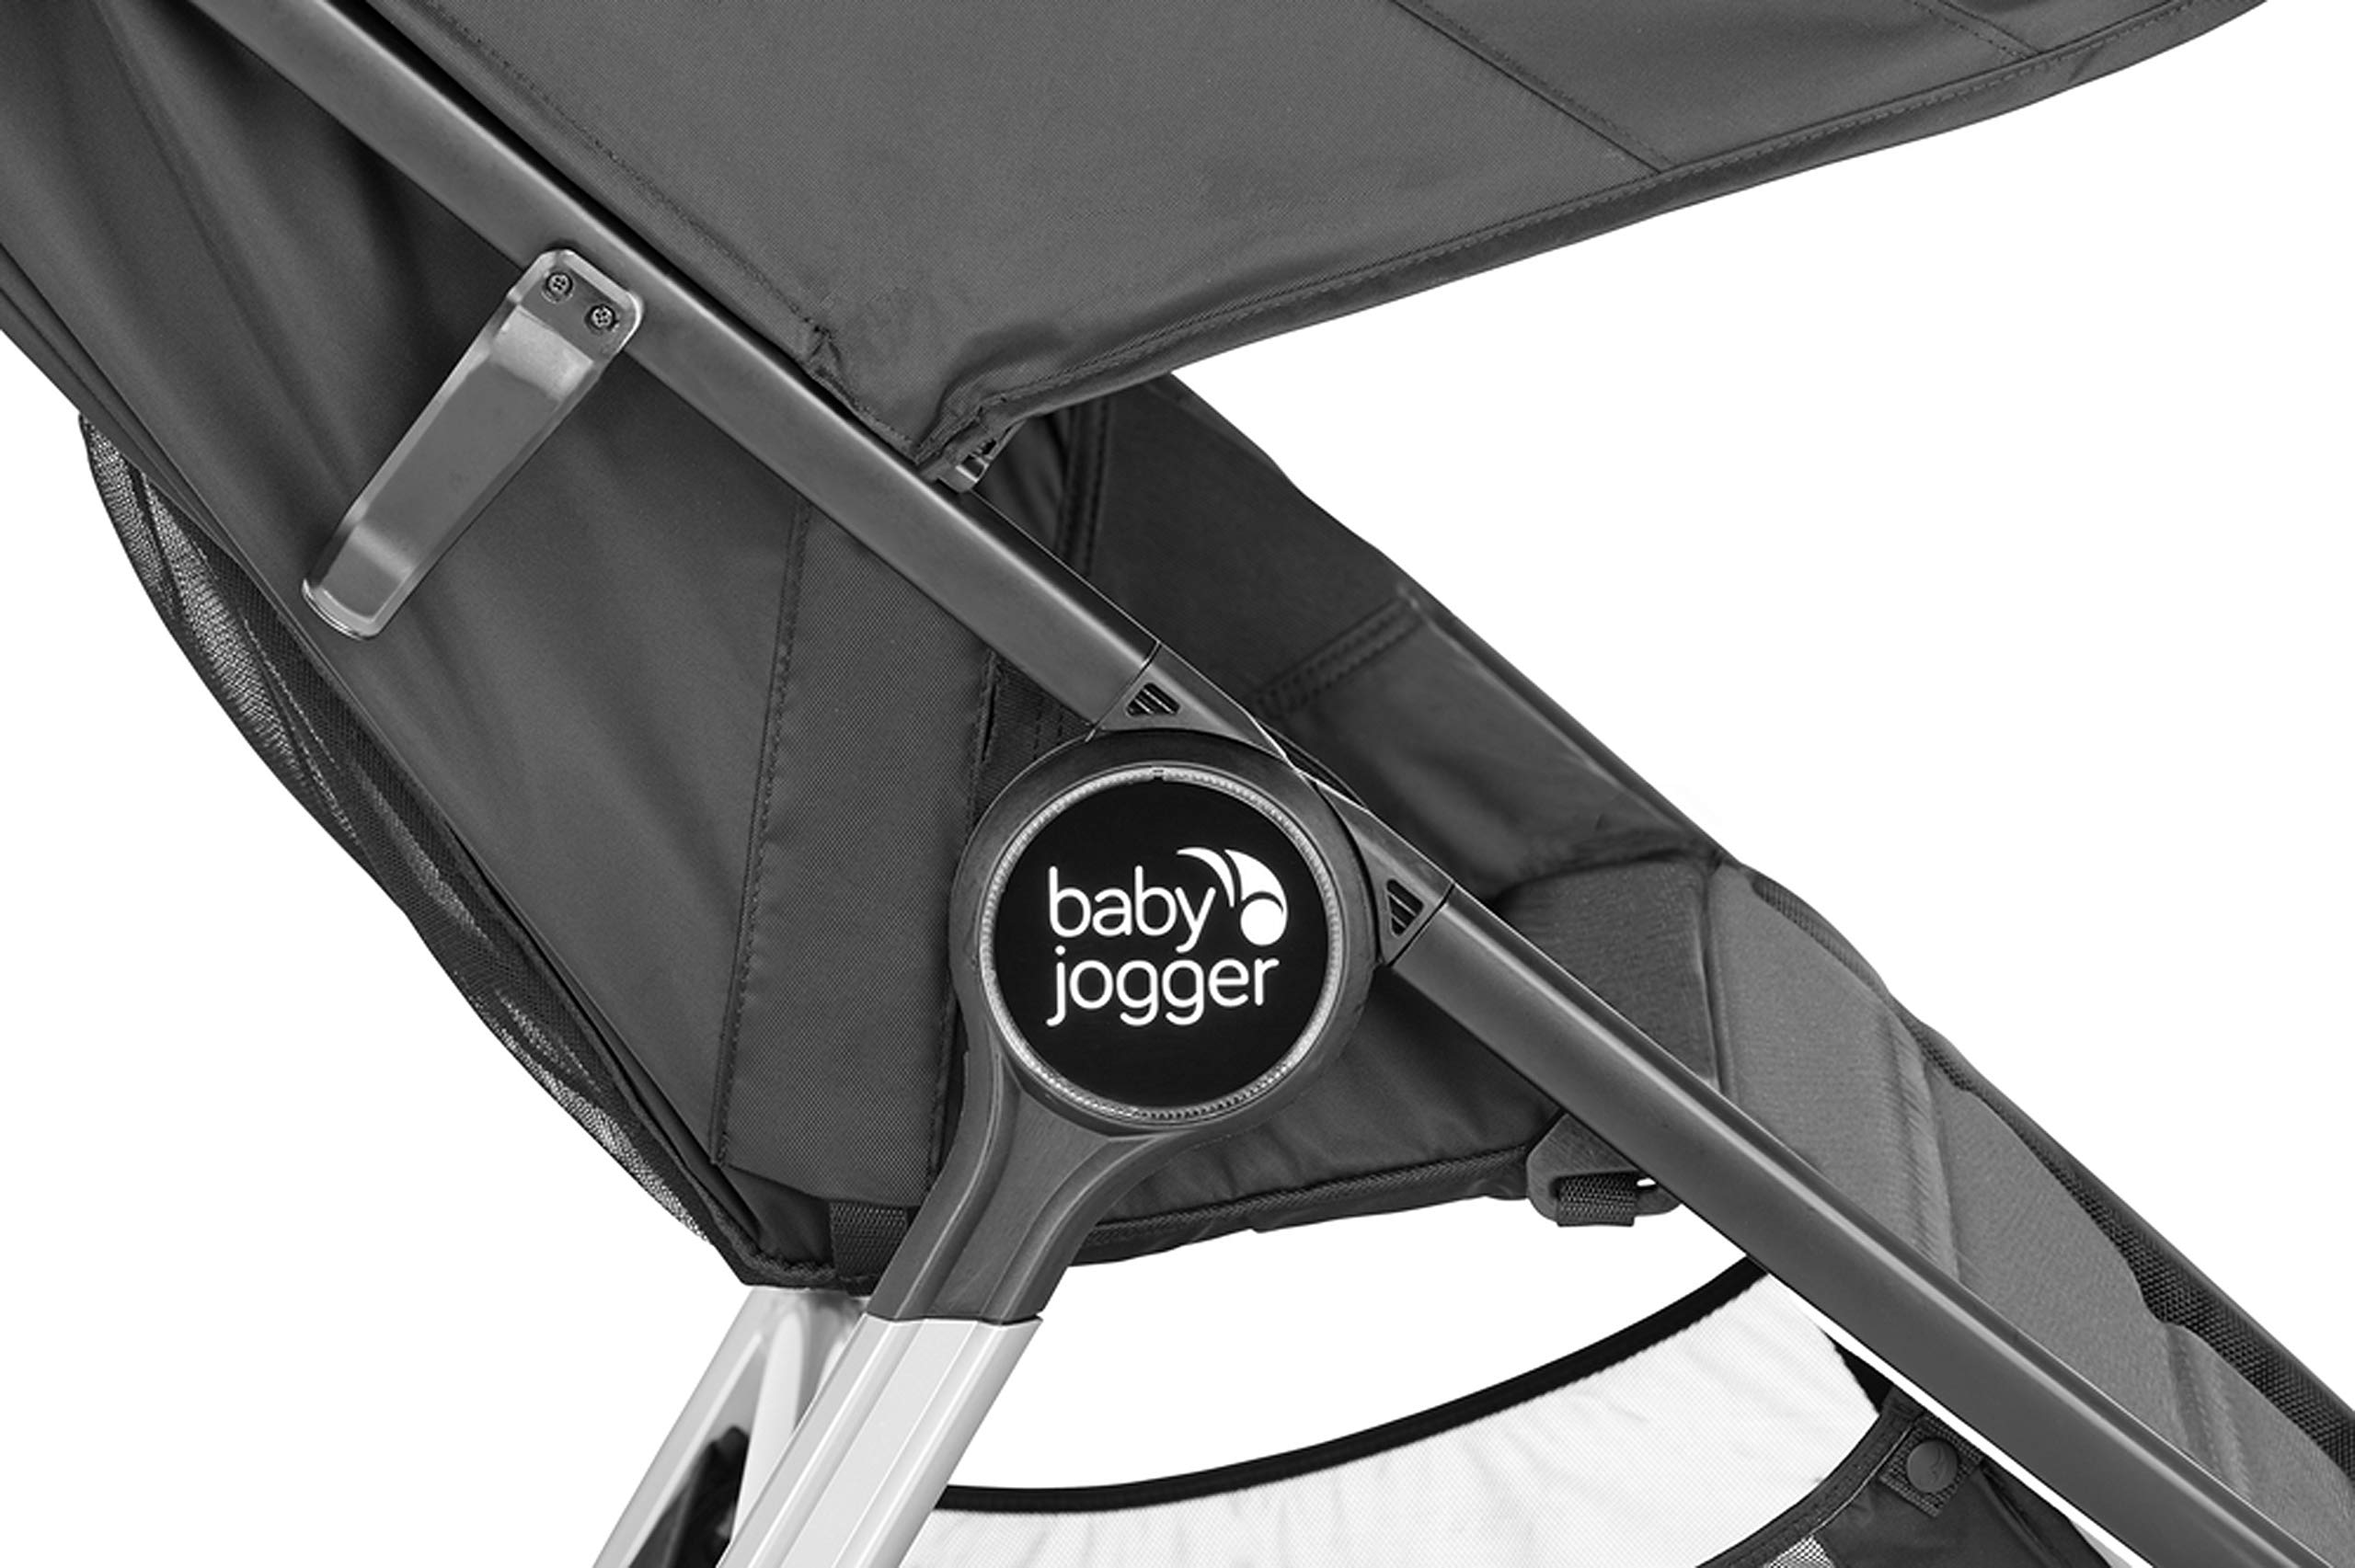 baby jogger City Mini 2 Single Stroller Jet Baby Jogger The baby jogger city mini 2 has an all new lightweight and compact design with the signature one-hand compact fold, with an auto-lock it's remarkably nimble and ready for adventure Lift a strap with one hand and the city mini 2 folds itself: simply and compactly. The auto-lock will lock the fold for transportation or storage The seat, with an adjustable calf support and near-flat recline, holds a child weighing up to 22kg and includes a 5-point stroller harness to keep them comfortable and safely secured 6